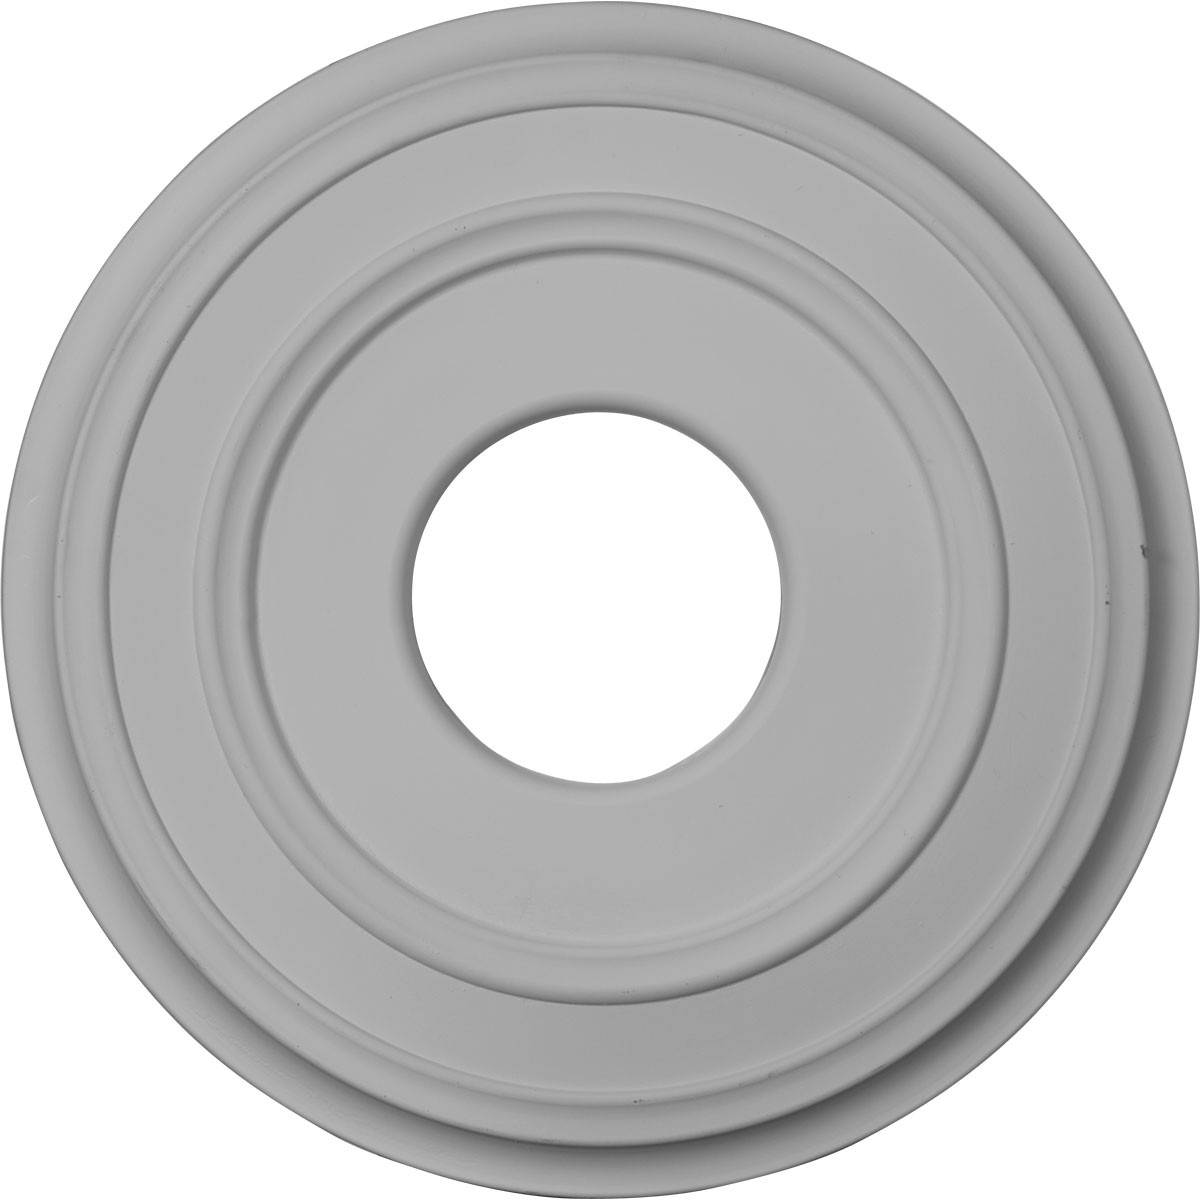 "EM-CM12CL - 12 3/8""OD x 4""ID x 1 1/8""P Classic Ceiling Medallion (Fits Canopies up to 7 1/4"")"